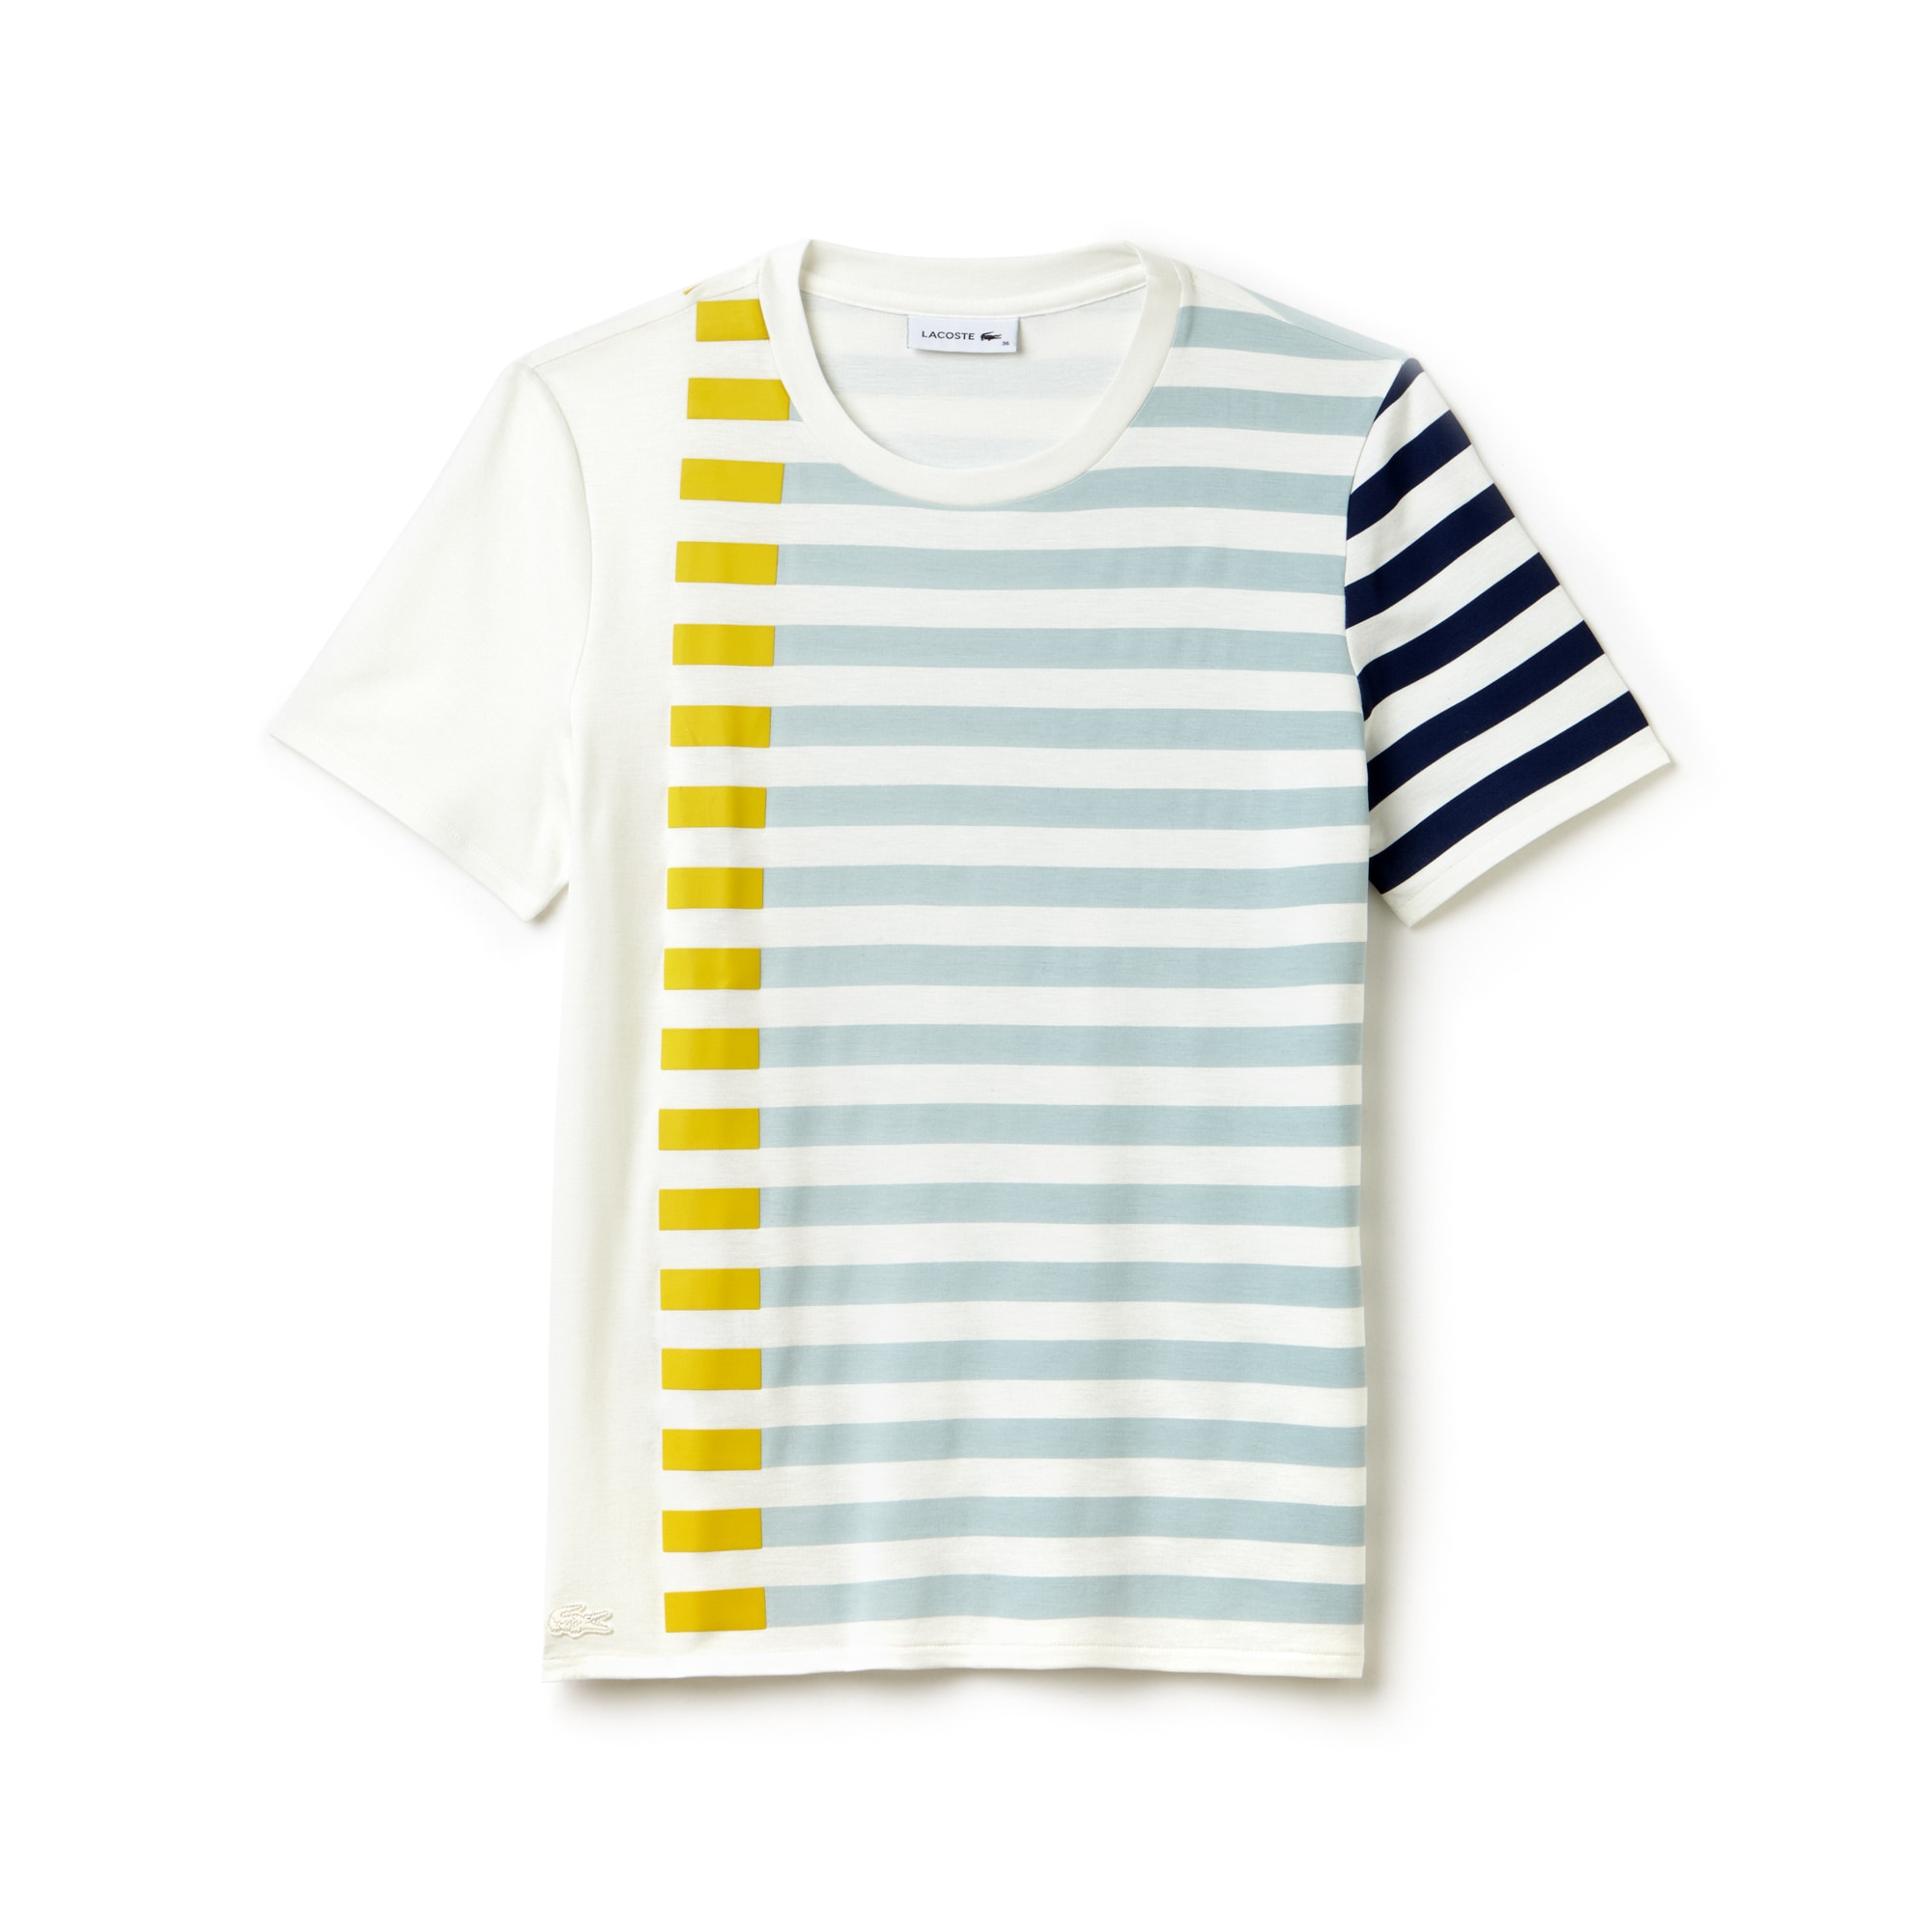 Women's Flowing Striped Colorblock Milano Knit T-shirt